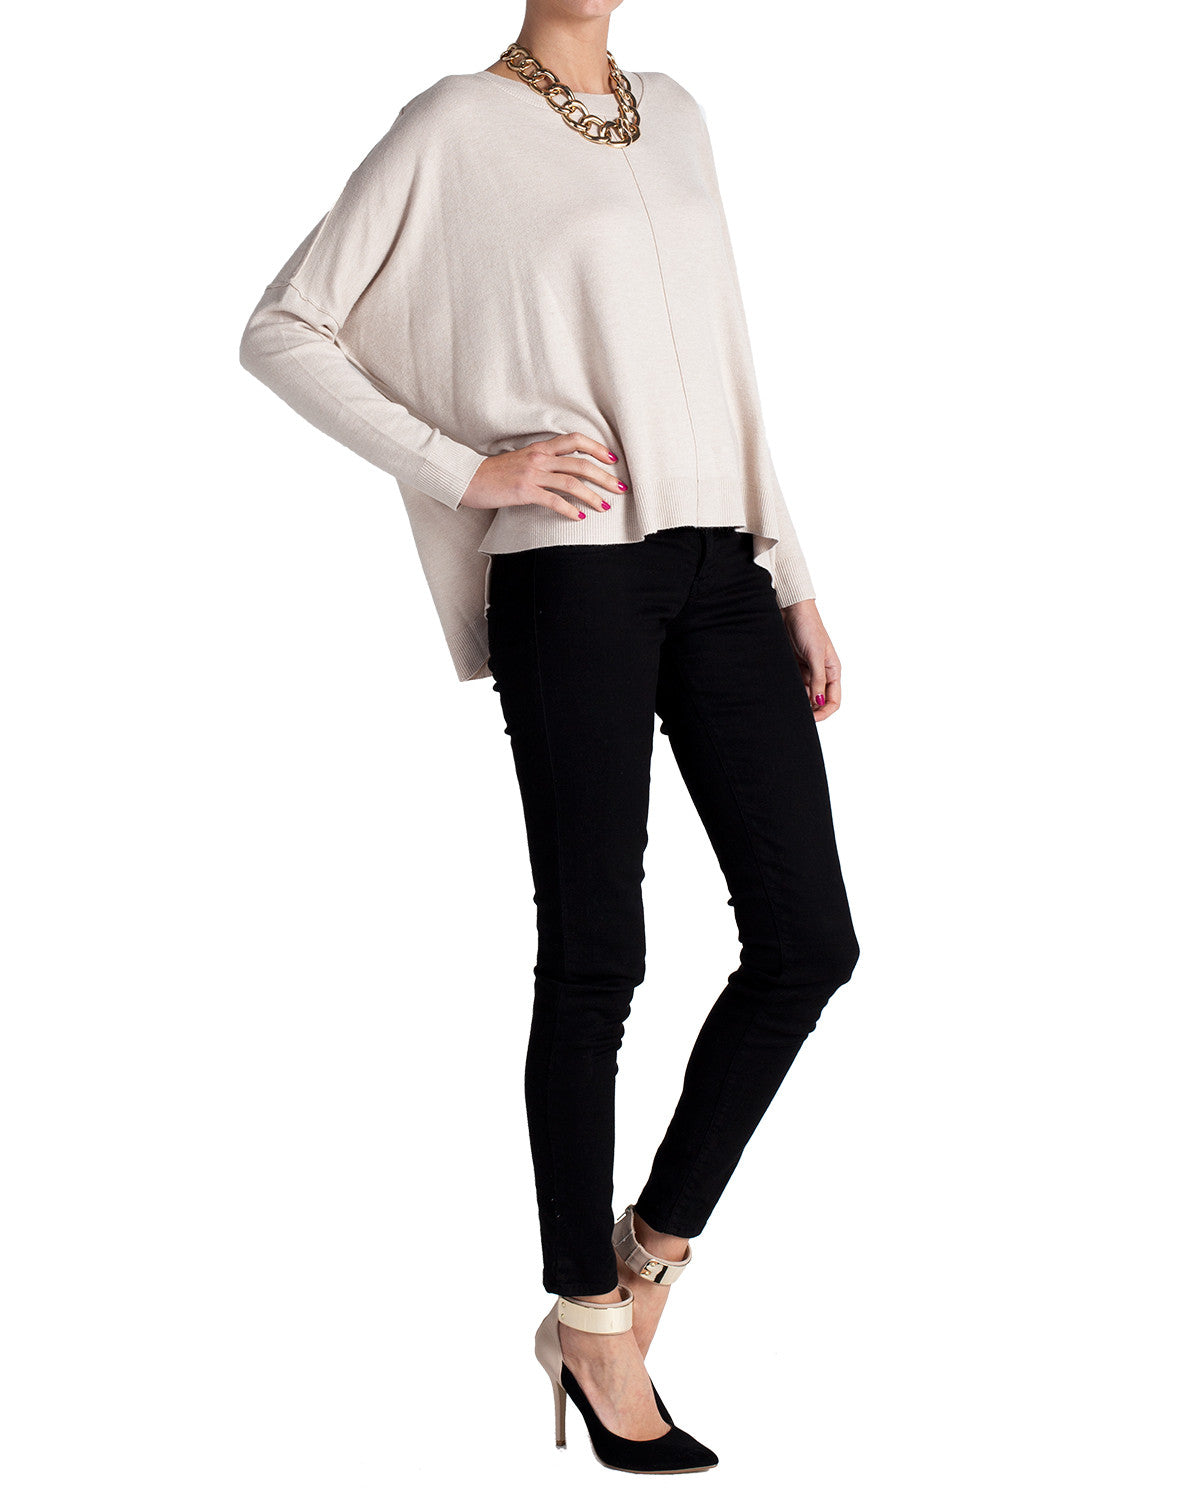 Supersoft Box Long Sleeve Top - Cream